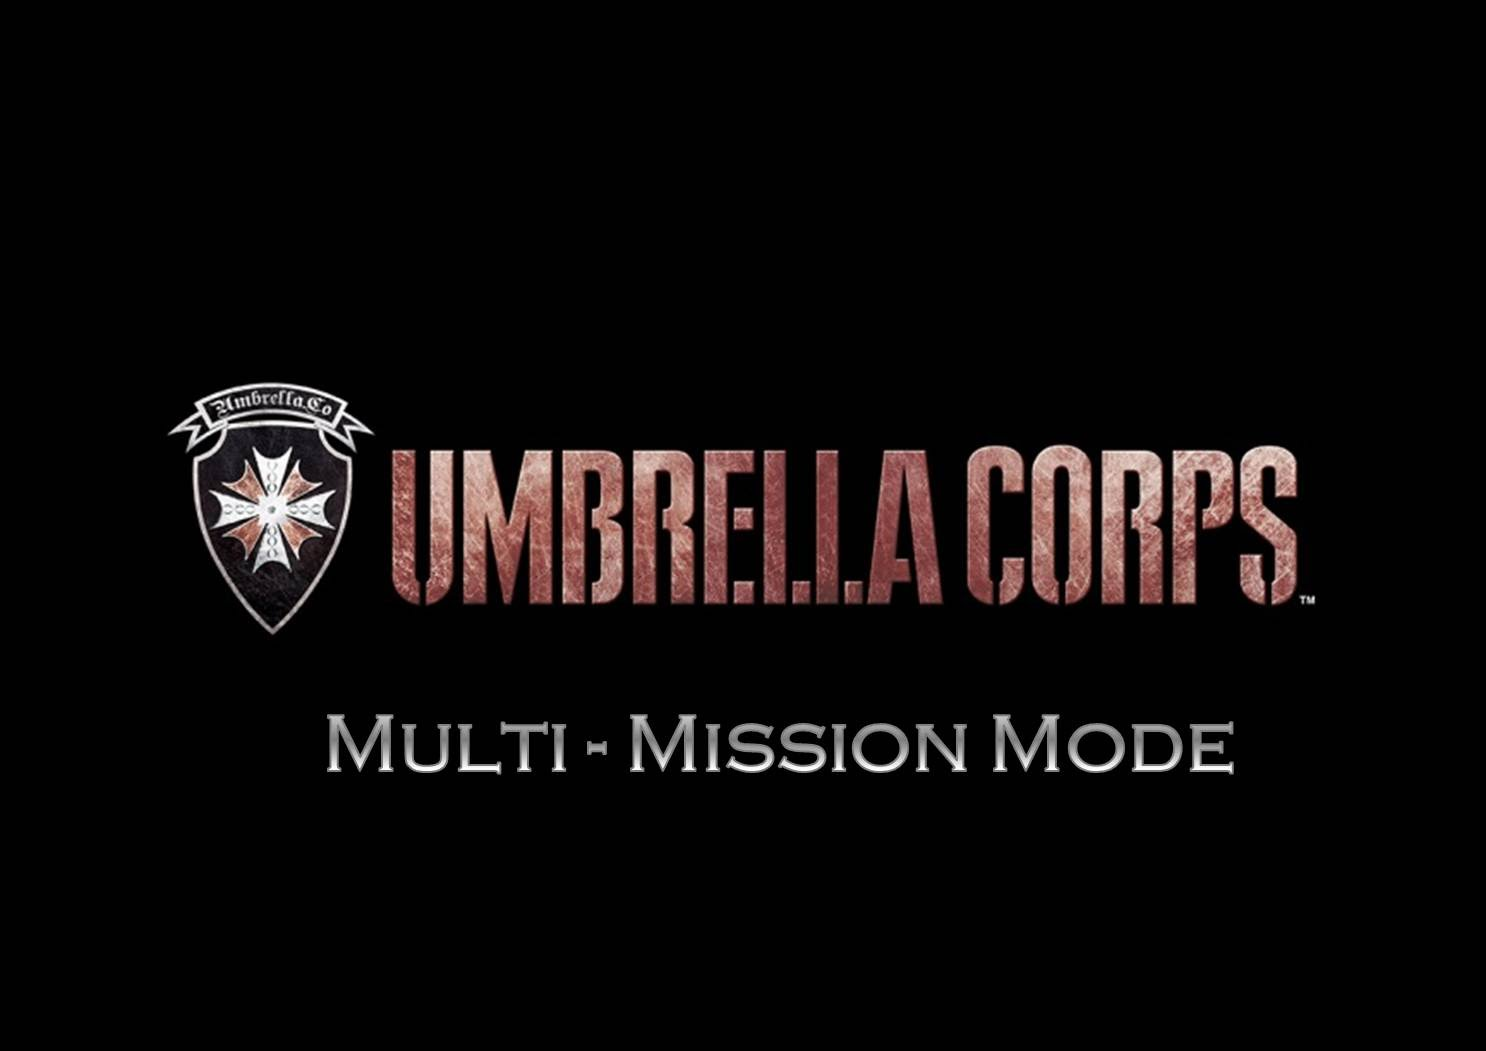 UMBRELLA CORPS - Introducing Multi-Mission Mode!